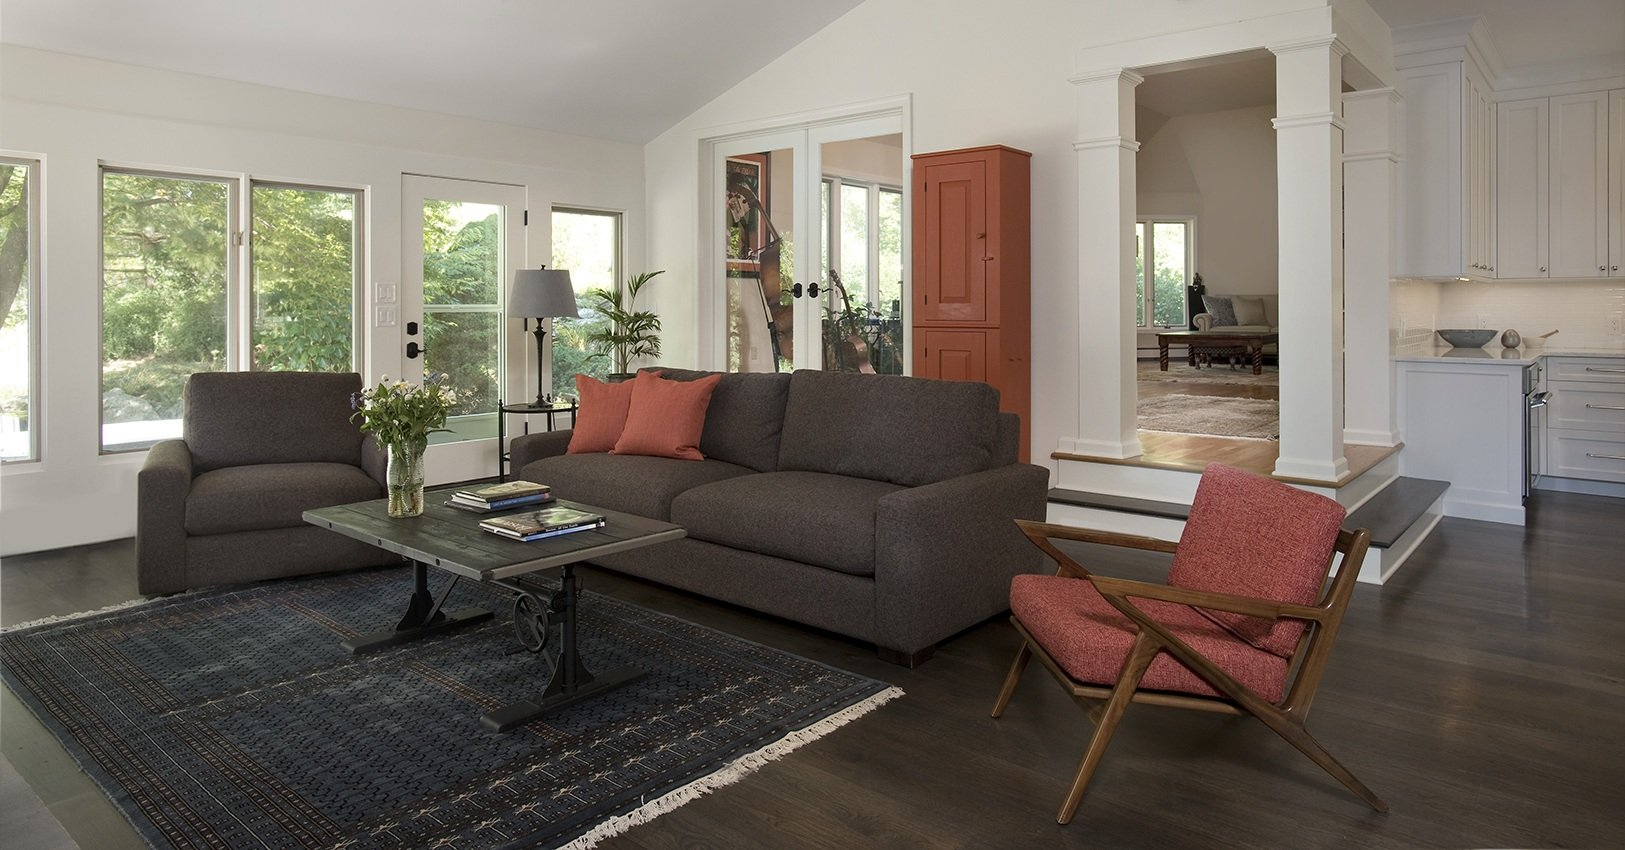 Great room with brown couches and orange chairs